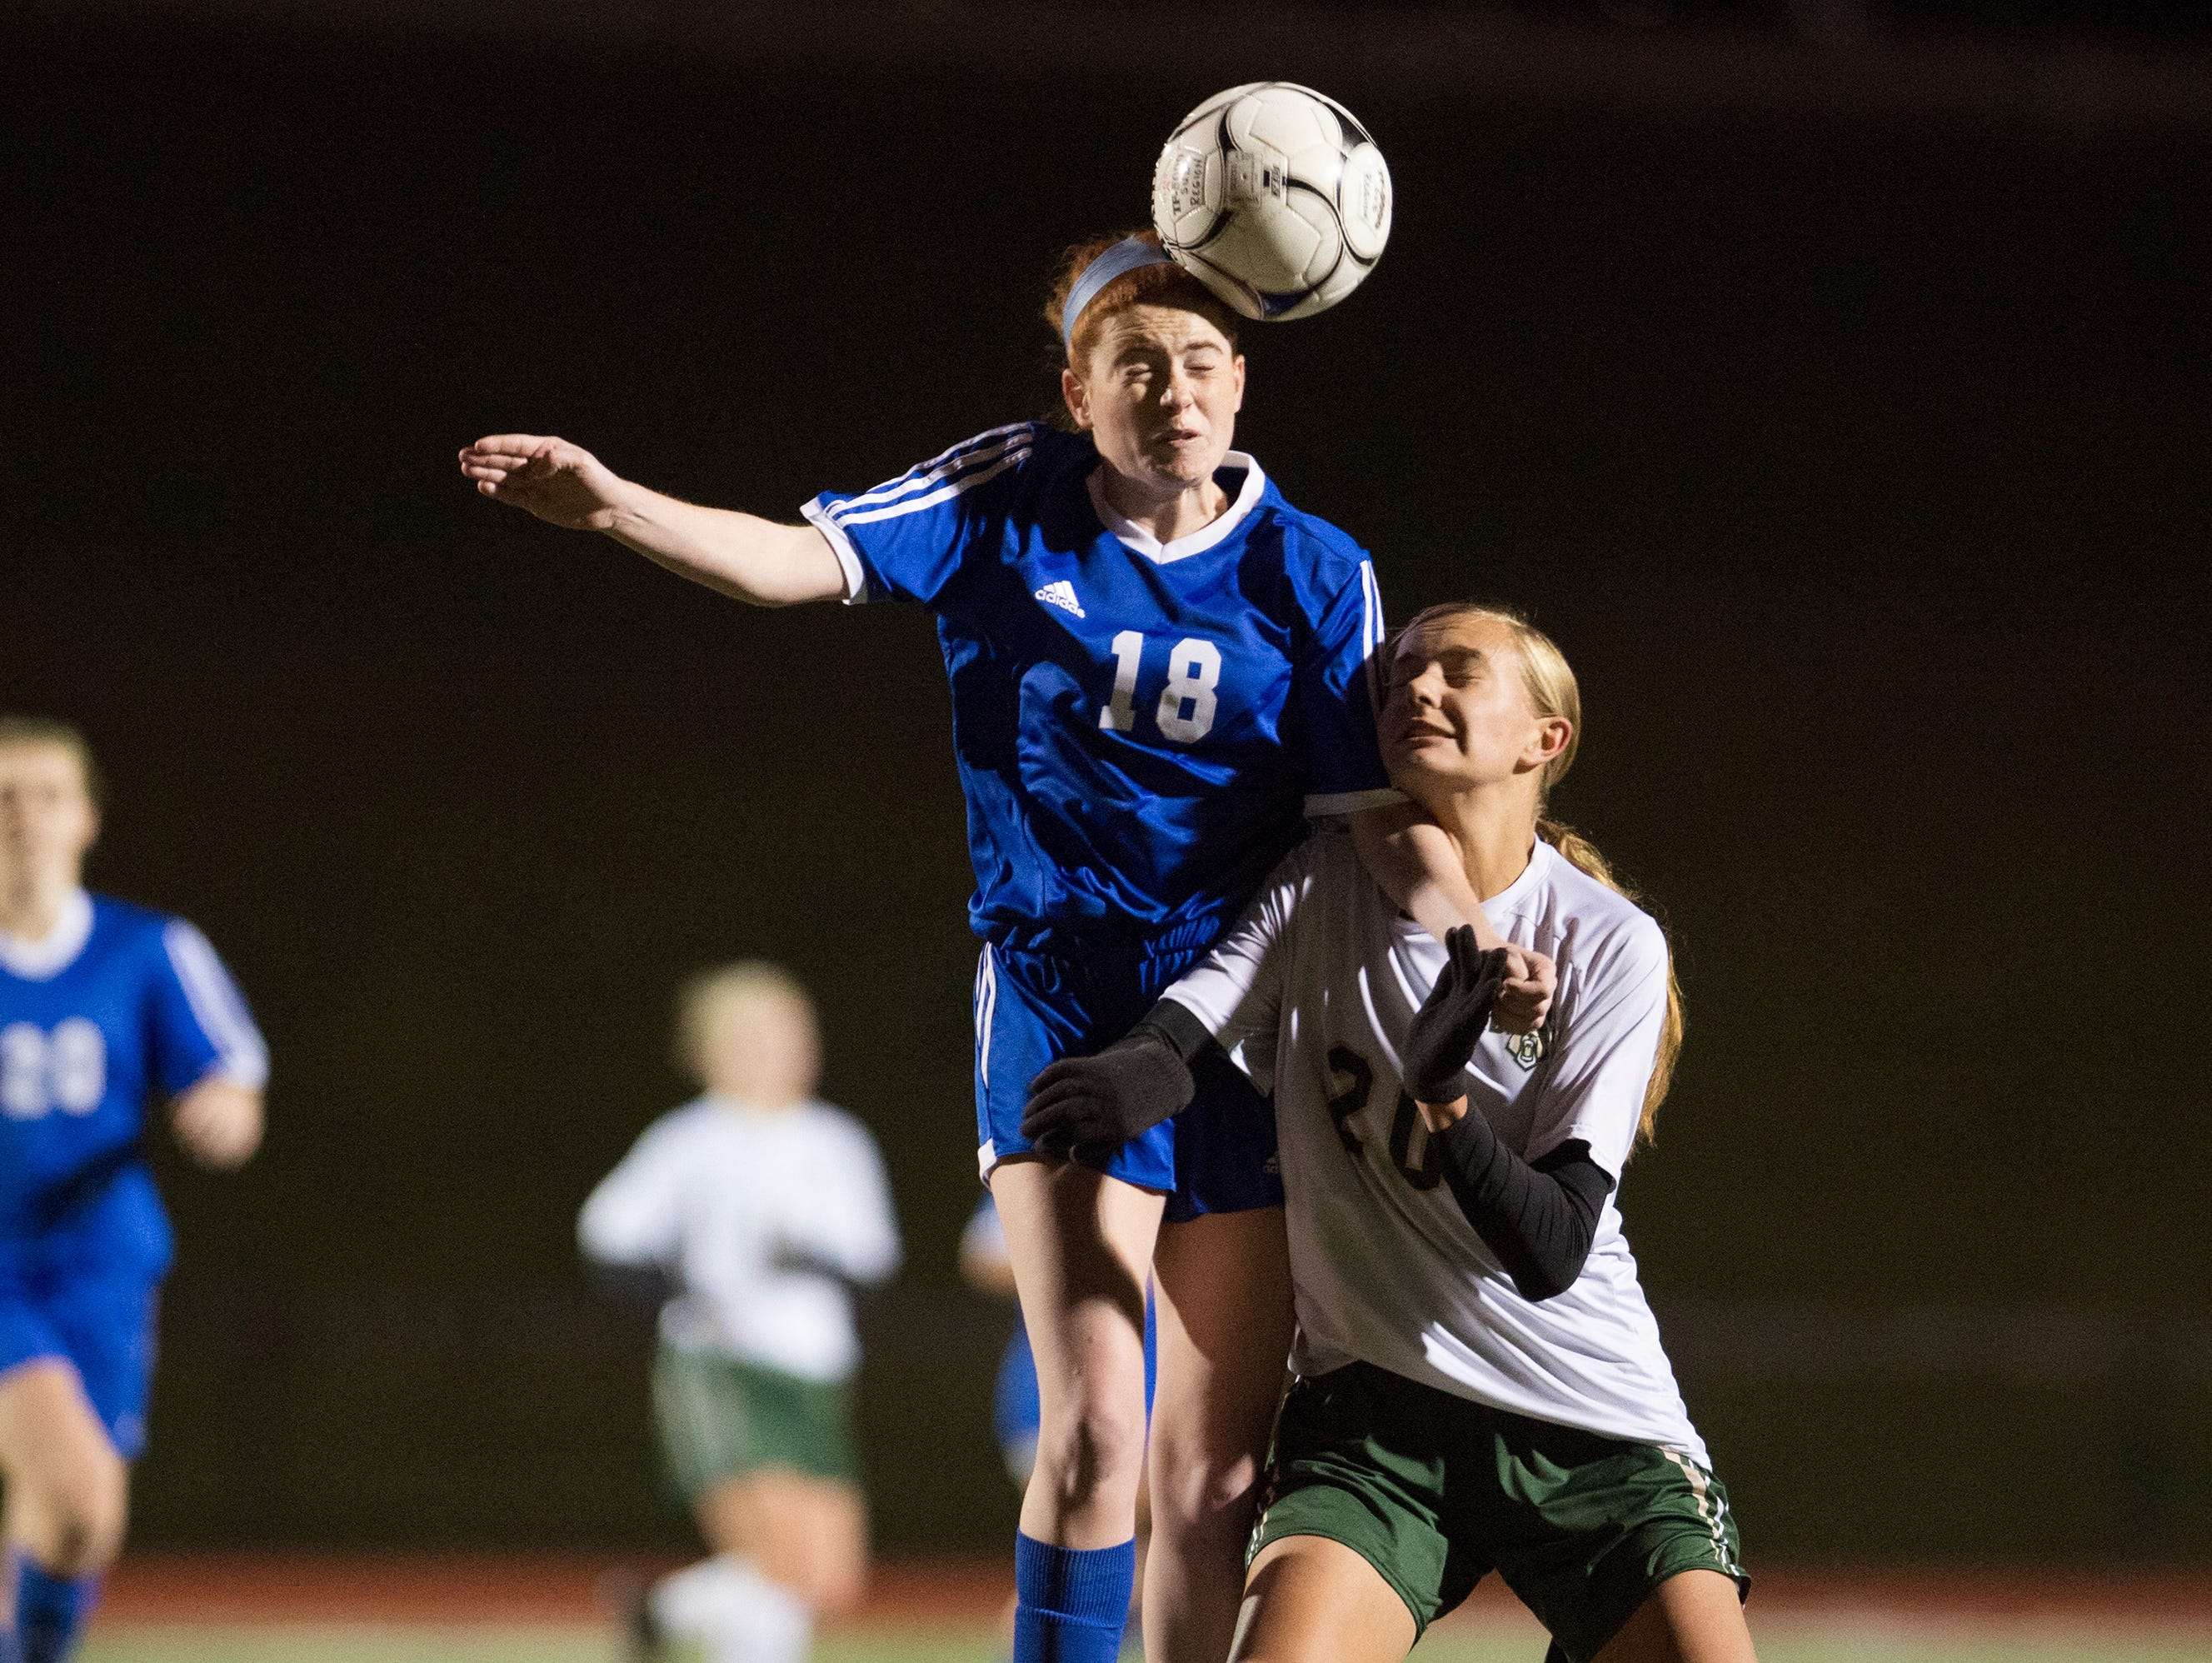 Pearl River's Shaelynn Guilfoyle (18) heads the ball past with Vestal's Kellie Kostek during the first half of Pearl River's 1-0 win in the Class A sub-regional of the high school soccer state playoffs on Tuesday, Nov. 1, 2016.